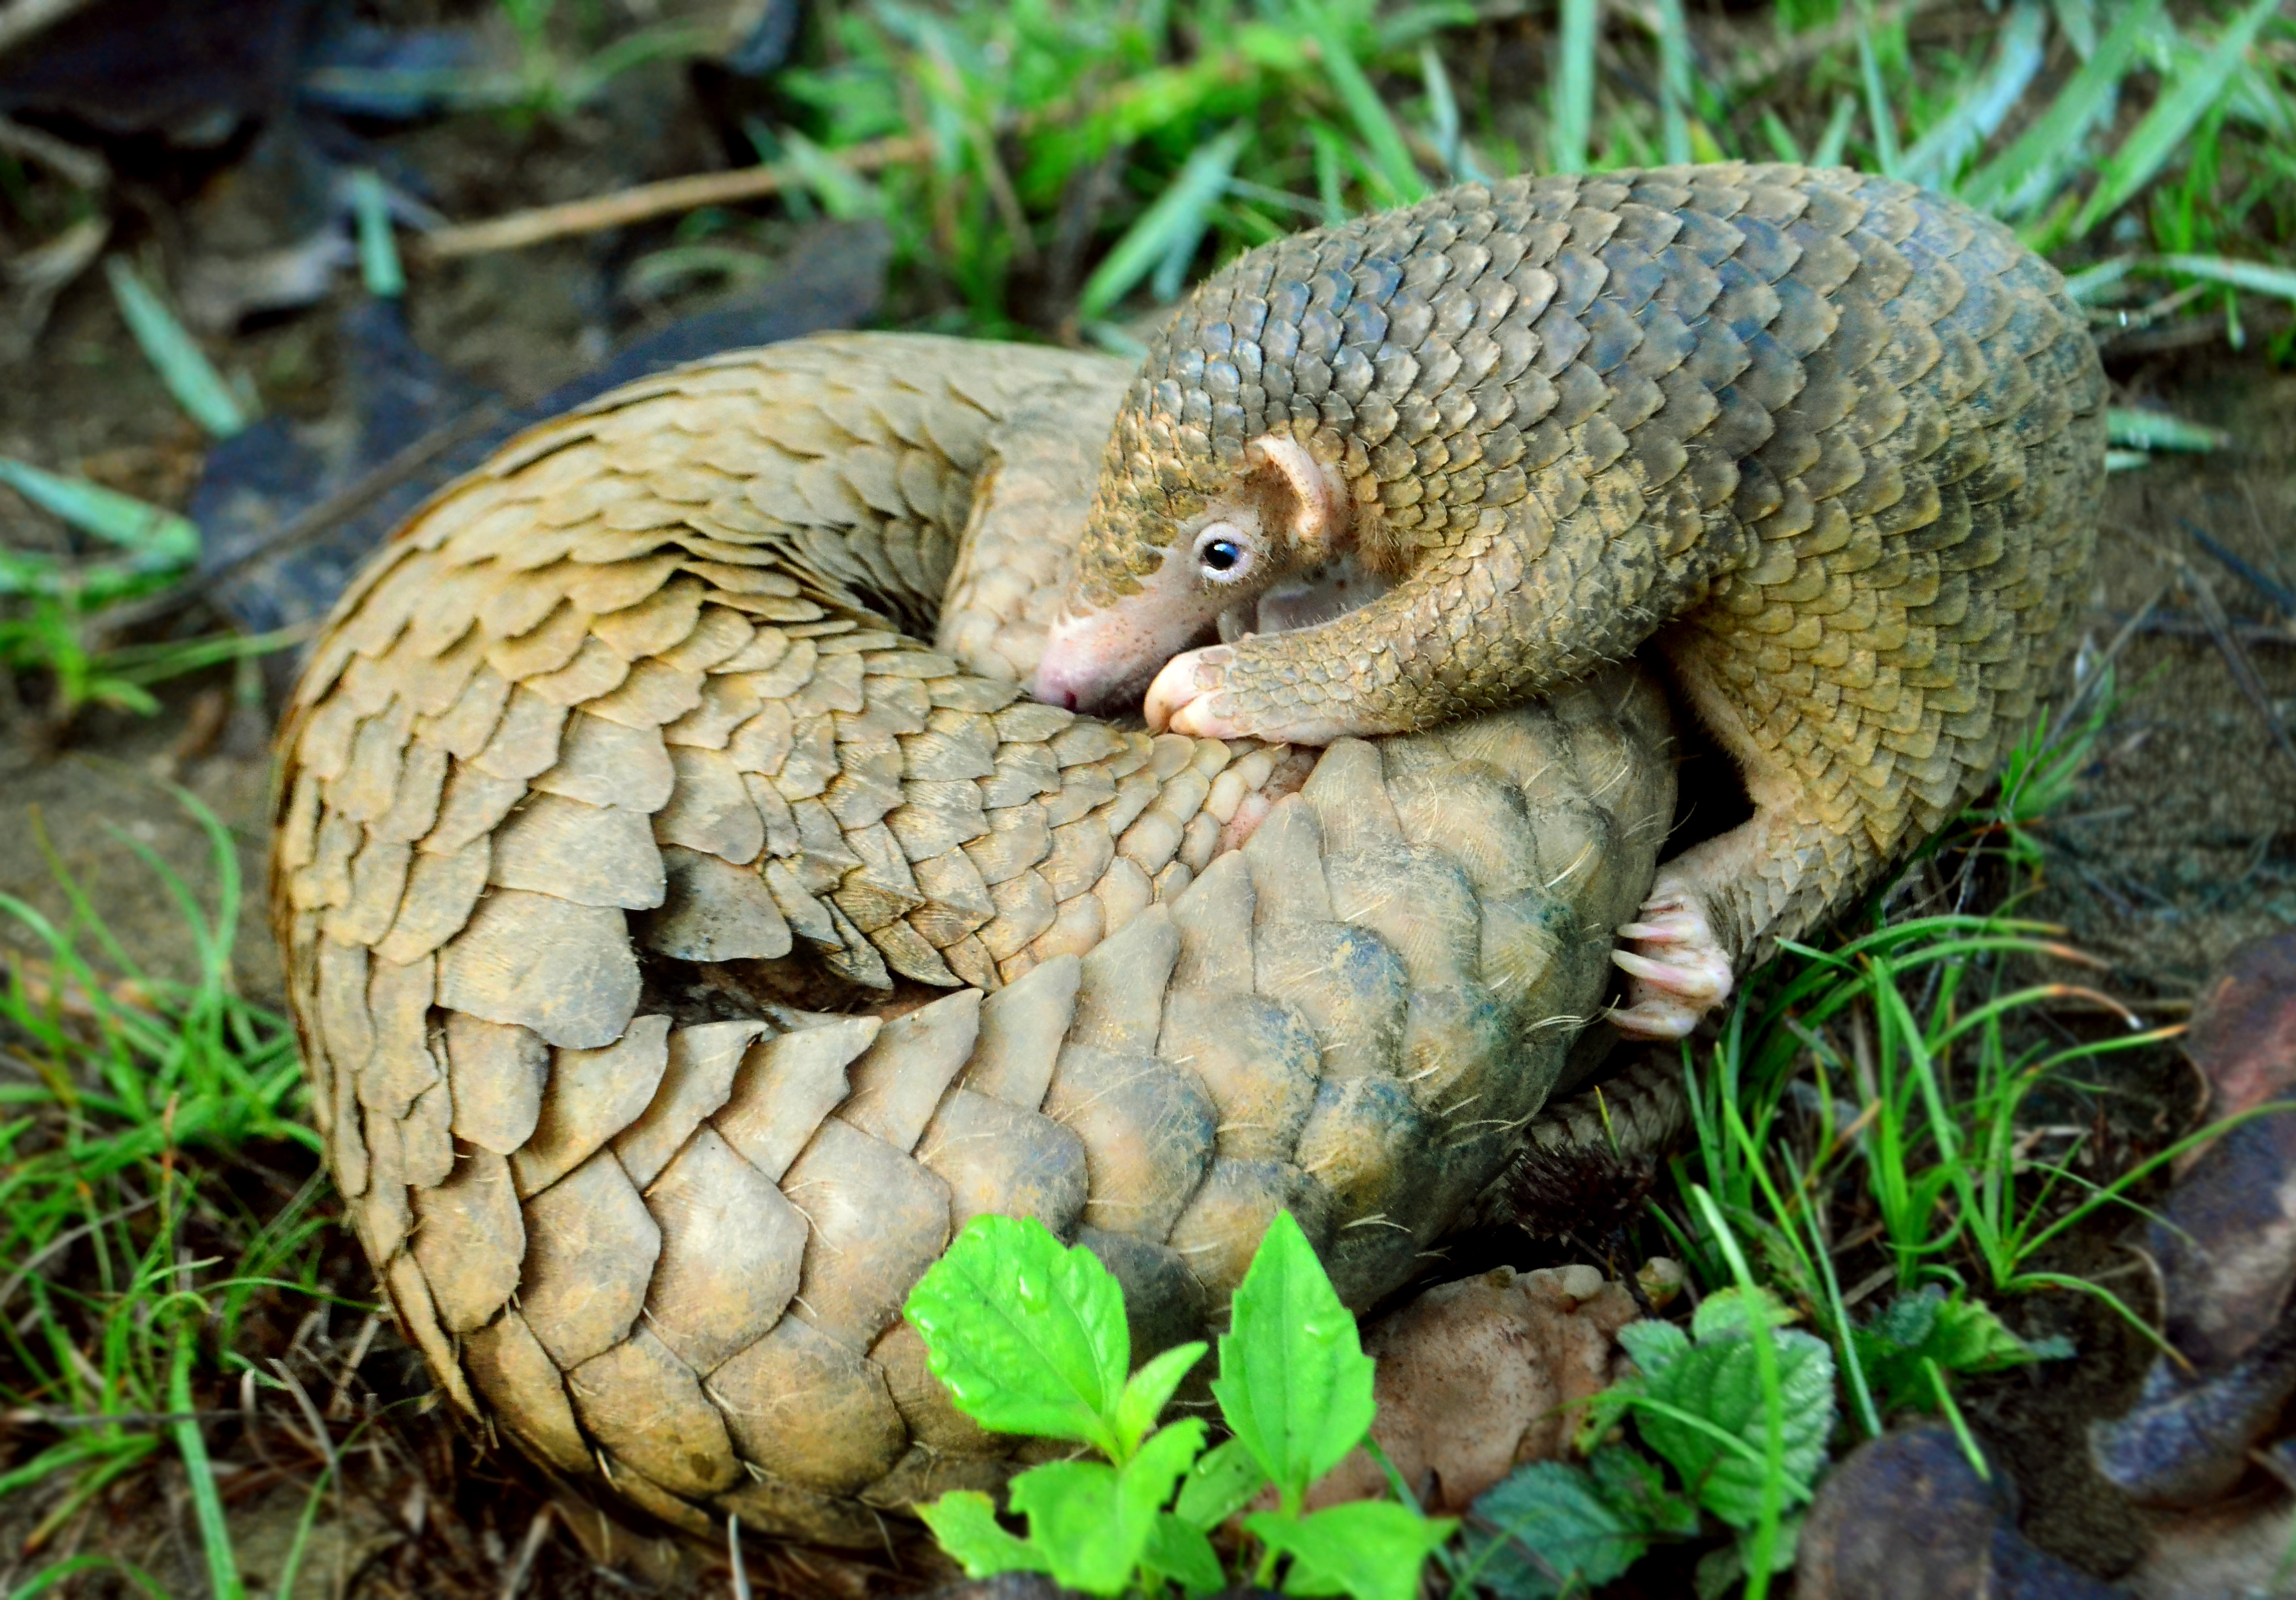 Using pangolin scales is still legal in China. Photo credit: Gregg Yan, wikimedia commons